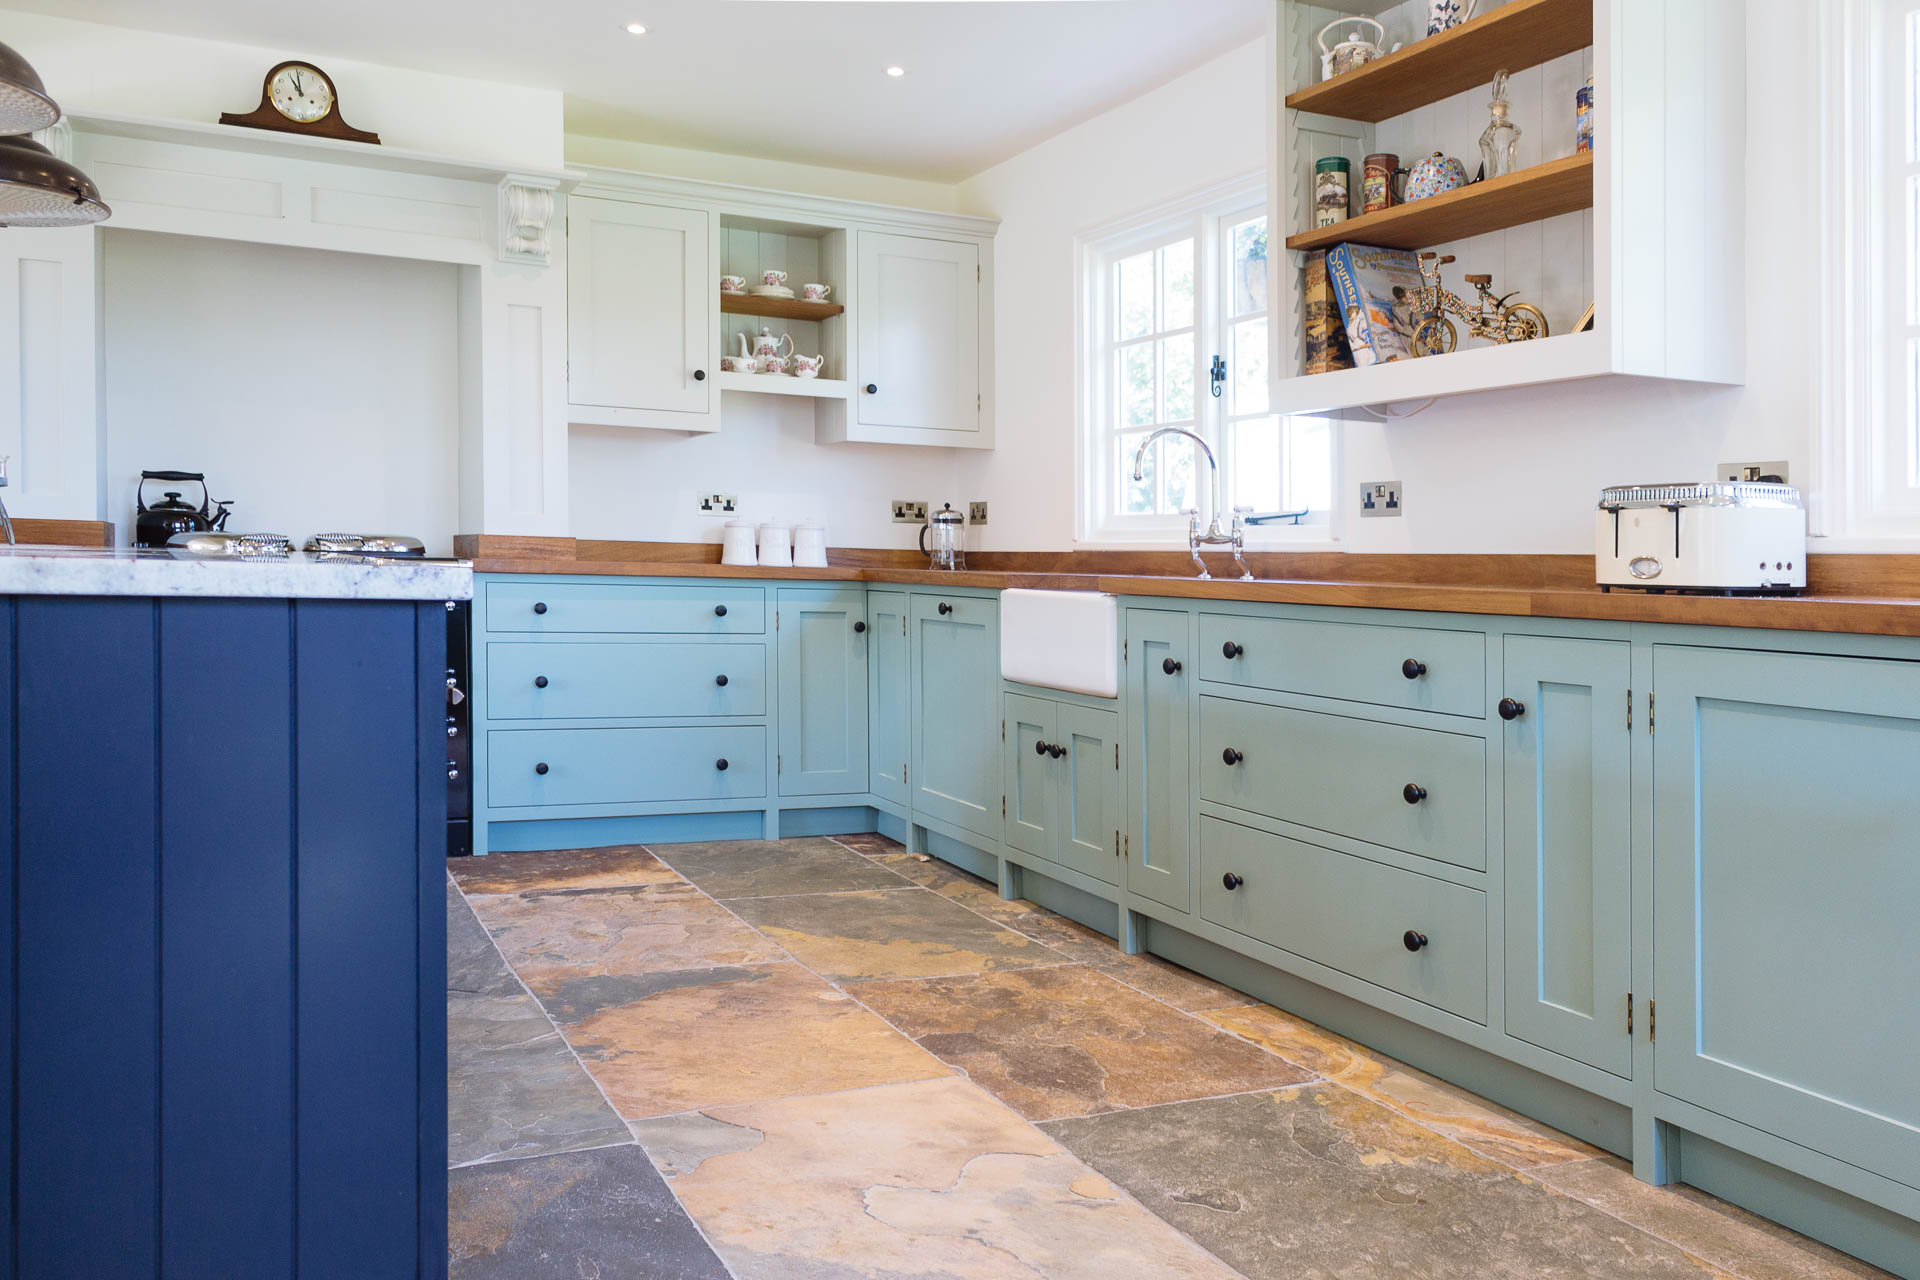 Foxes Hill Kitchen detailing showing an antique brass Harlrech pull handle against Farrow & Ball Pitch Black paint